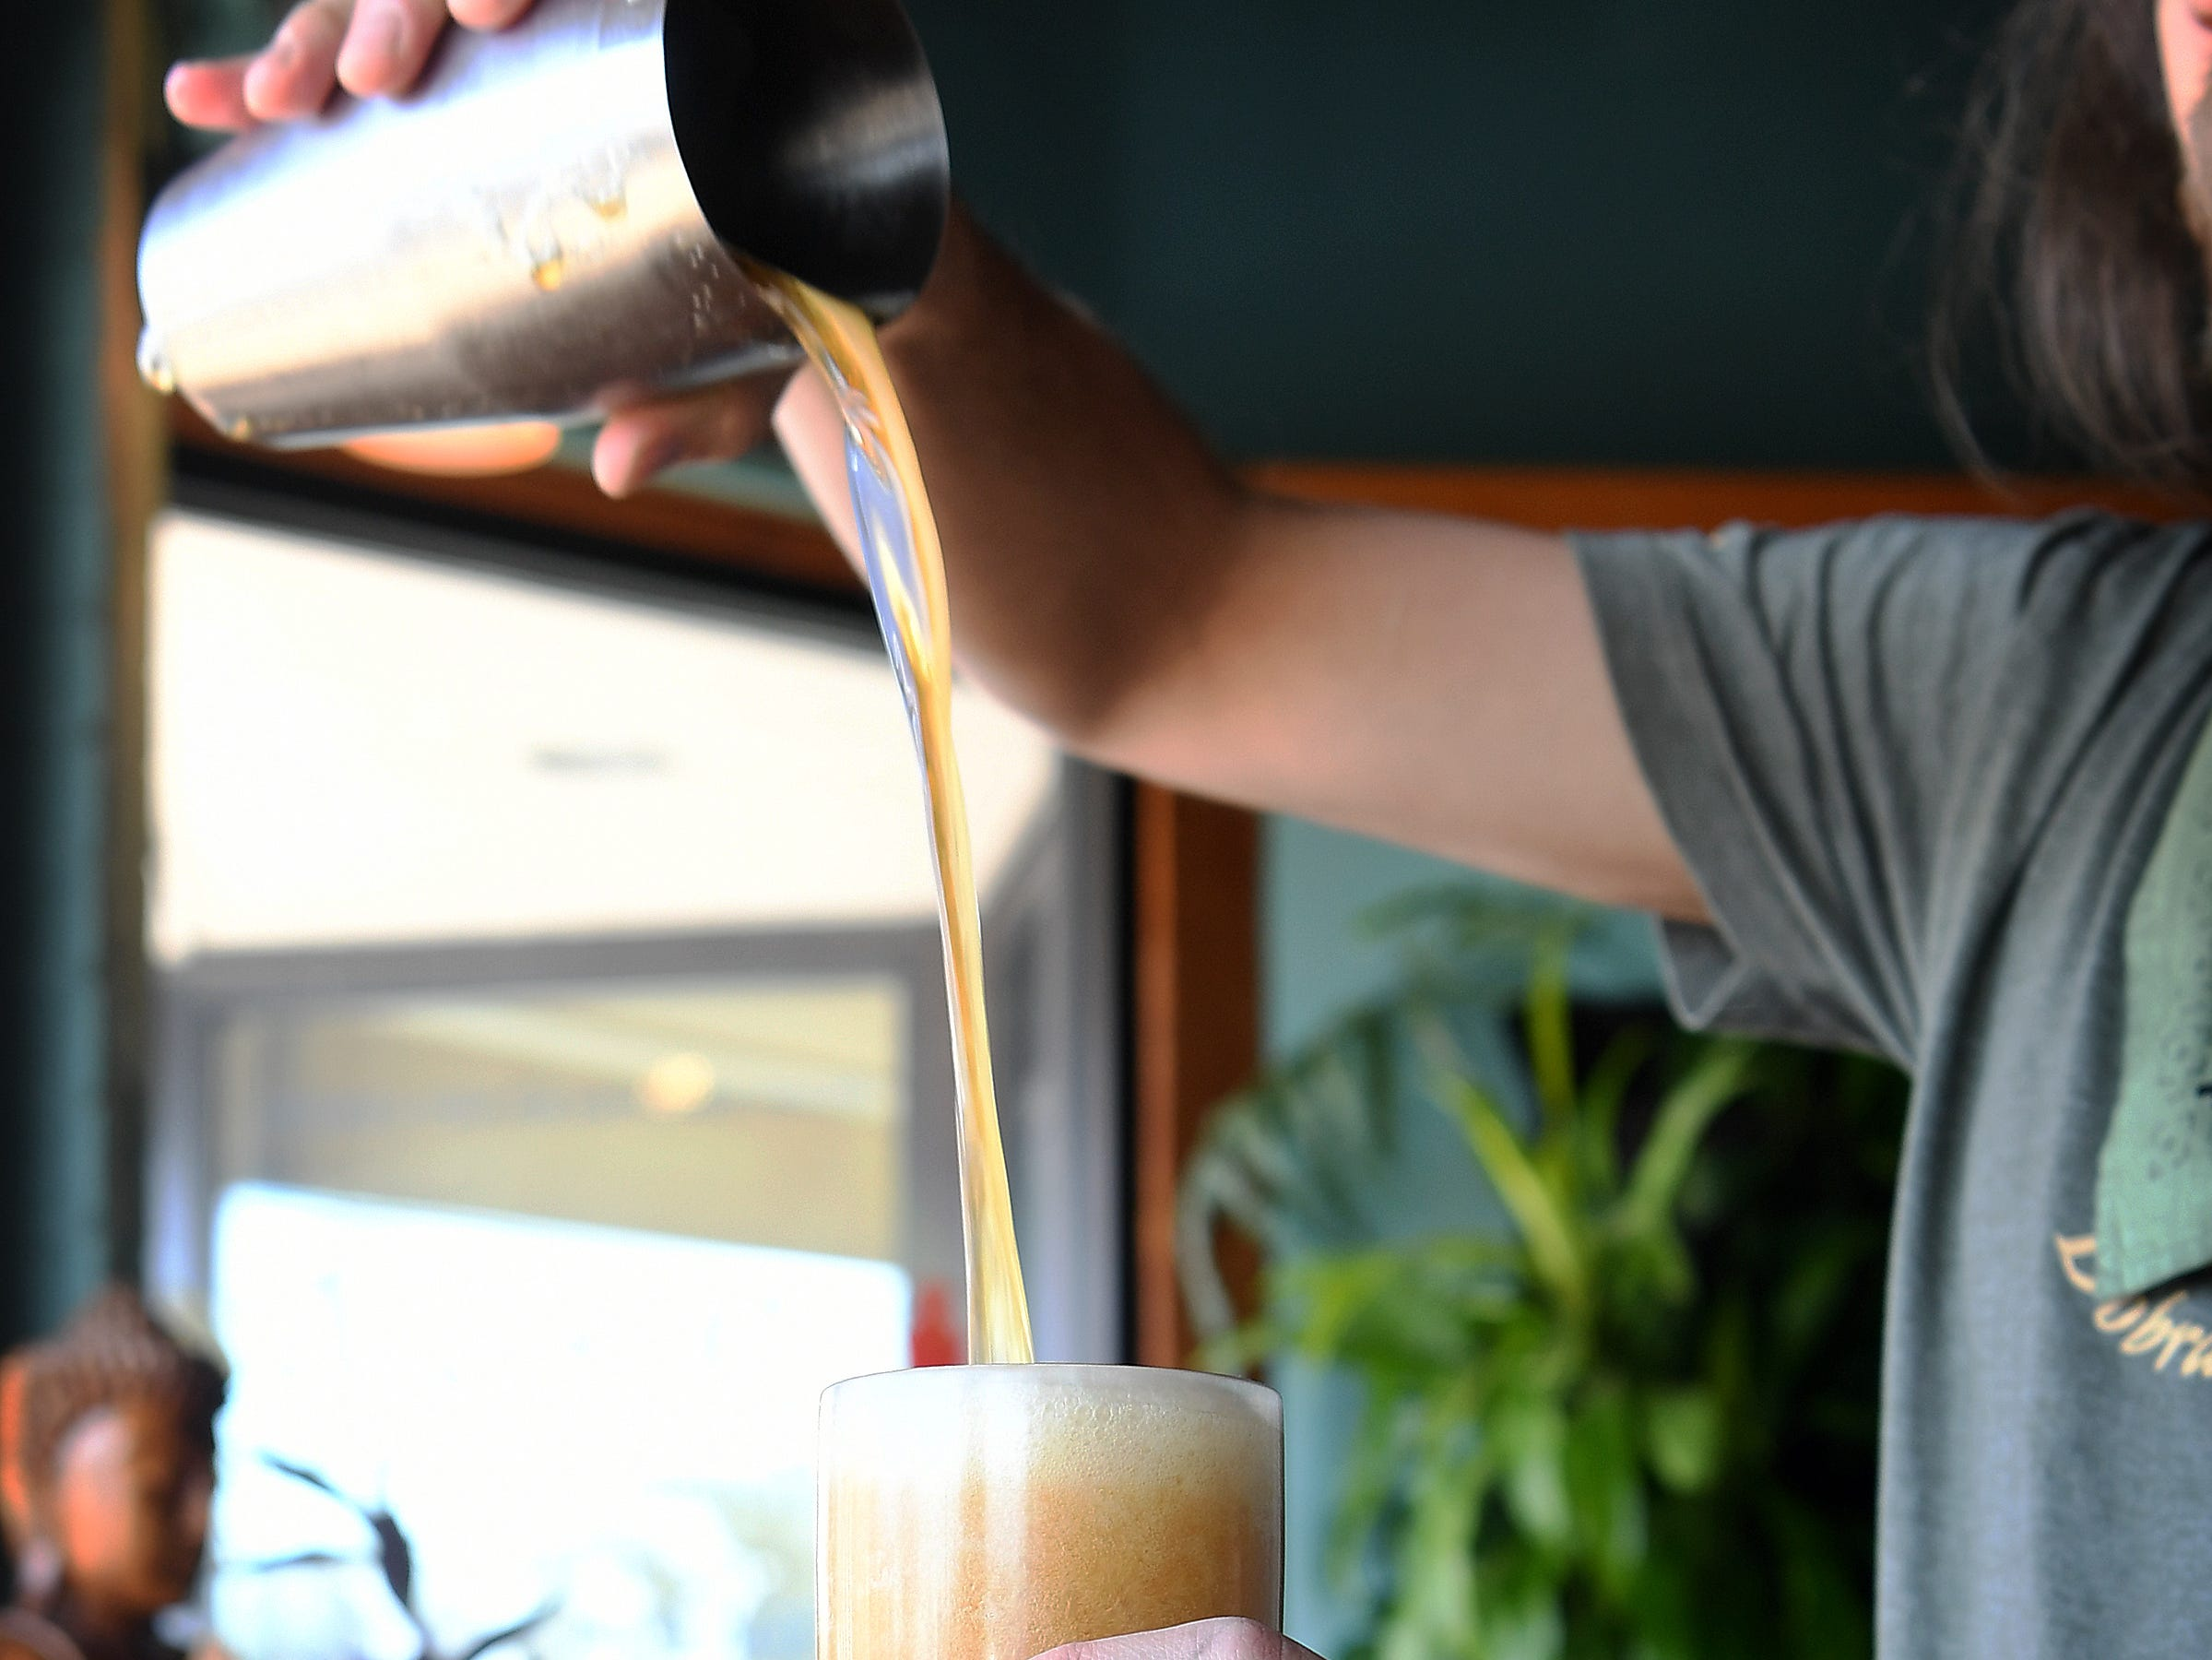 Staroborshov tea, served at Dobra Tea's West Asheville location, is a dark oolong tea shaken with some organic sugar to produce a frothy head that looks similar to a beer.